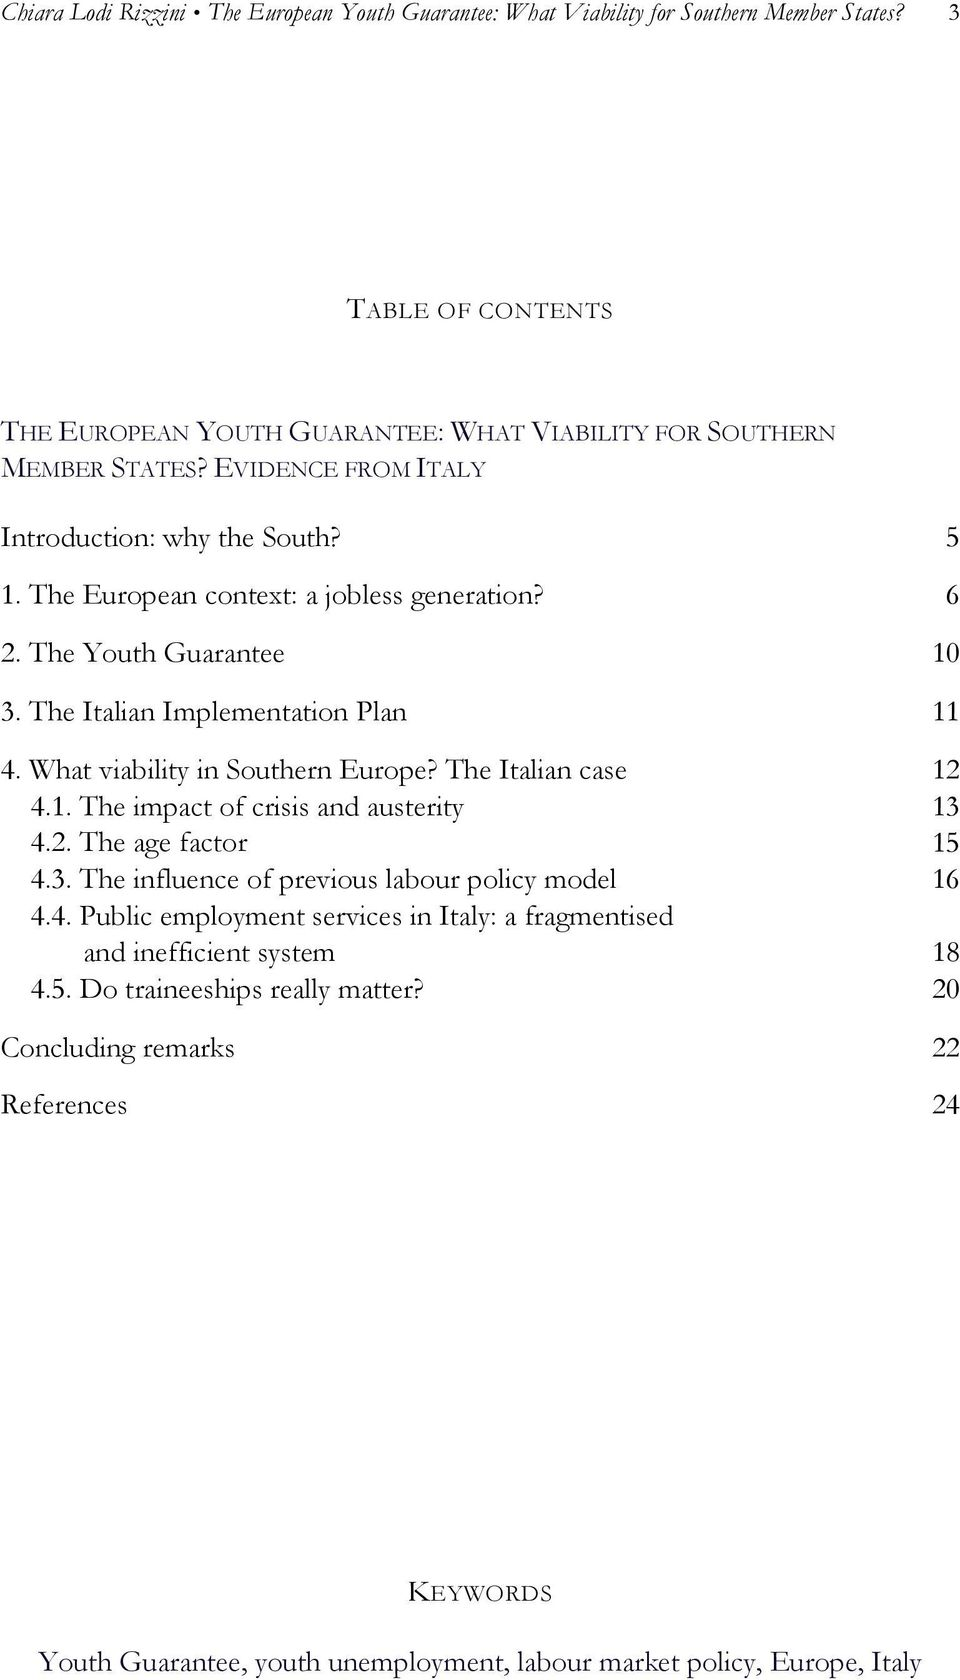 What viability in Southern Europe? The Italian case 4.1. The impact of crisis and austerity 4.2. The age factor 4.3. The influence of previous labour policy model 4.4. Public employment services in Italy: a fragmentised and inefficient system 4.